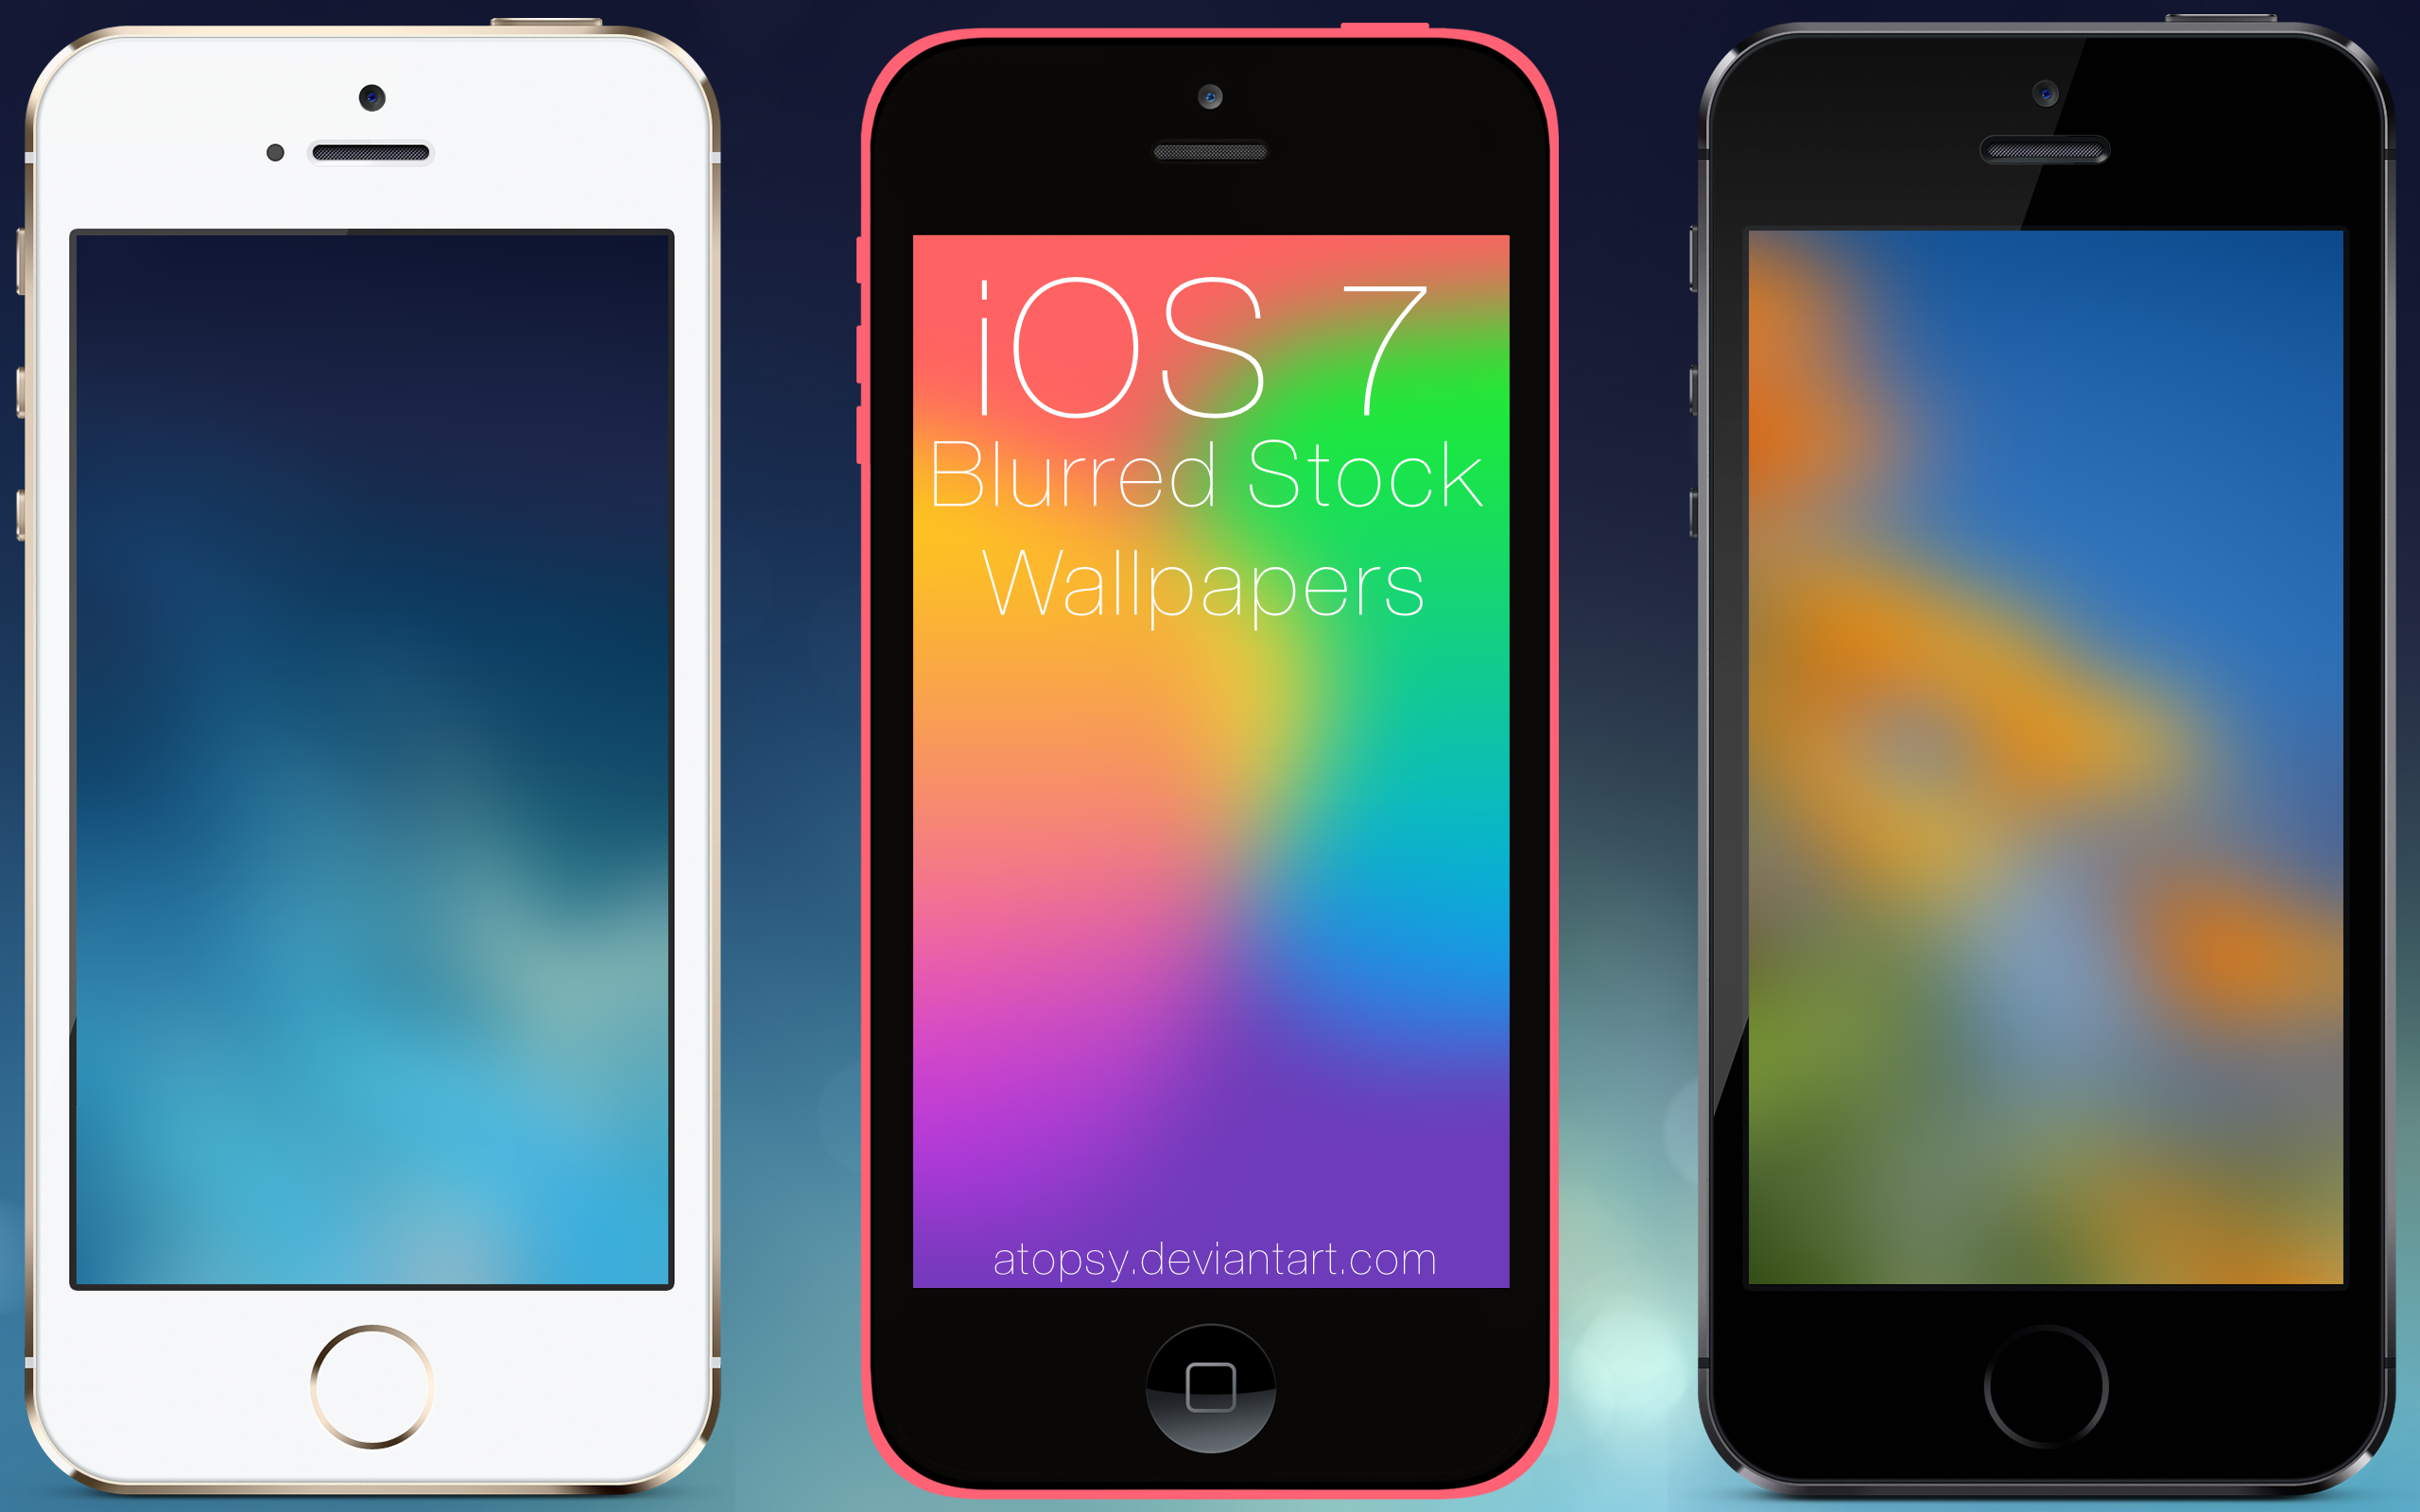 Blurred Wallpapers (iPhone/iPod Touch 5/5s/5c) By Atopsy